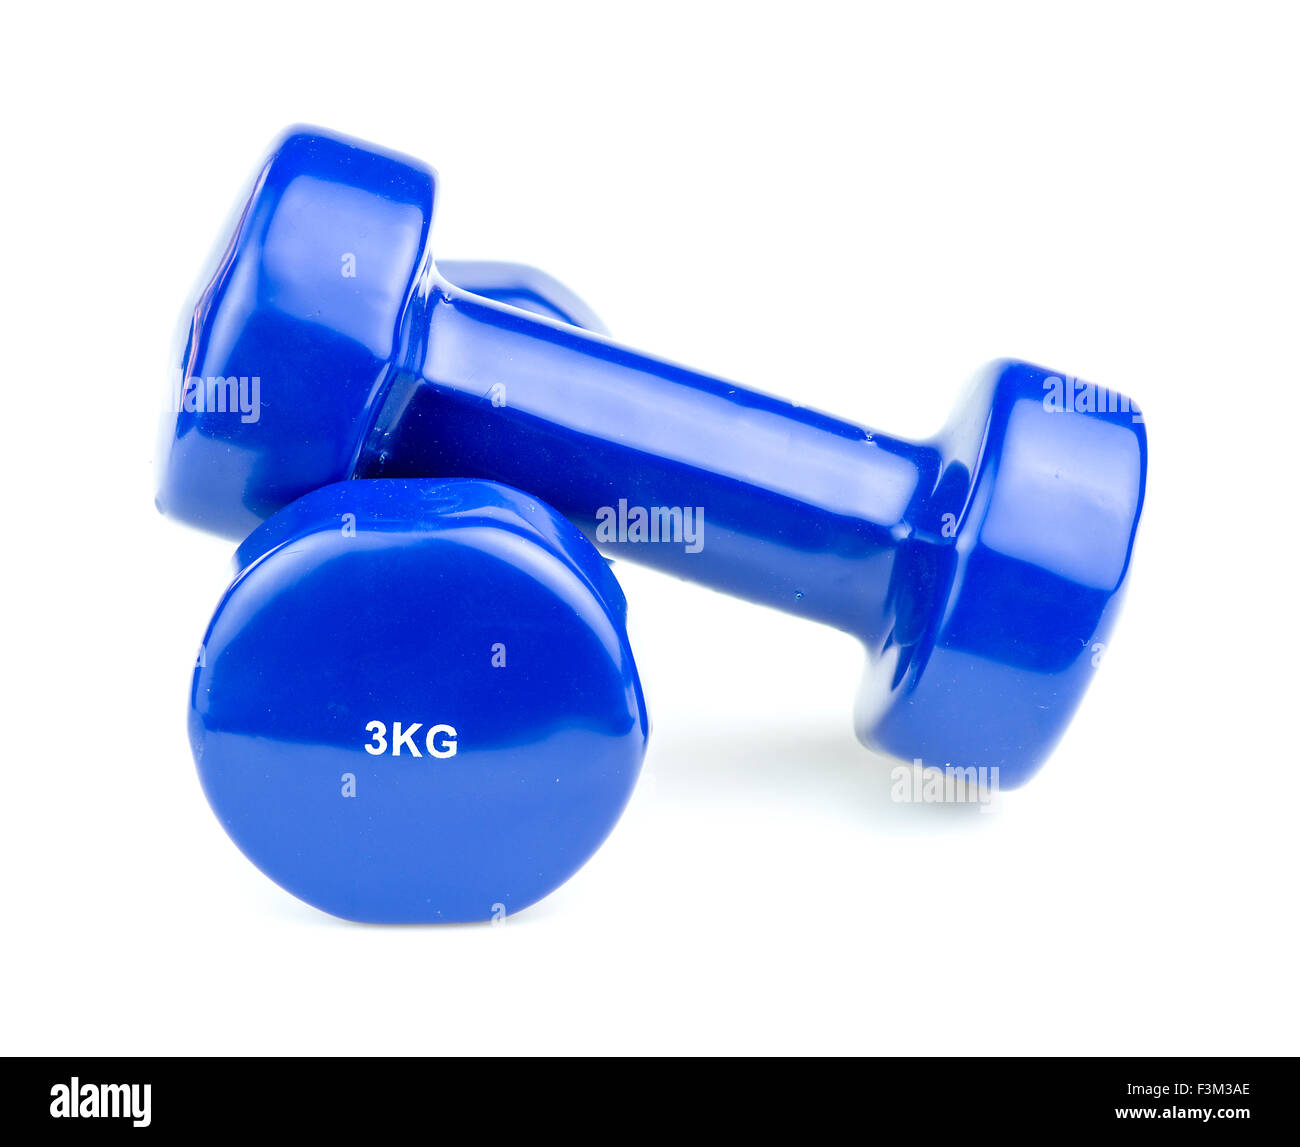 3kg home dumbbell weights for working out - Stock Image